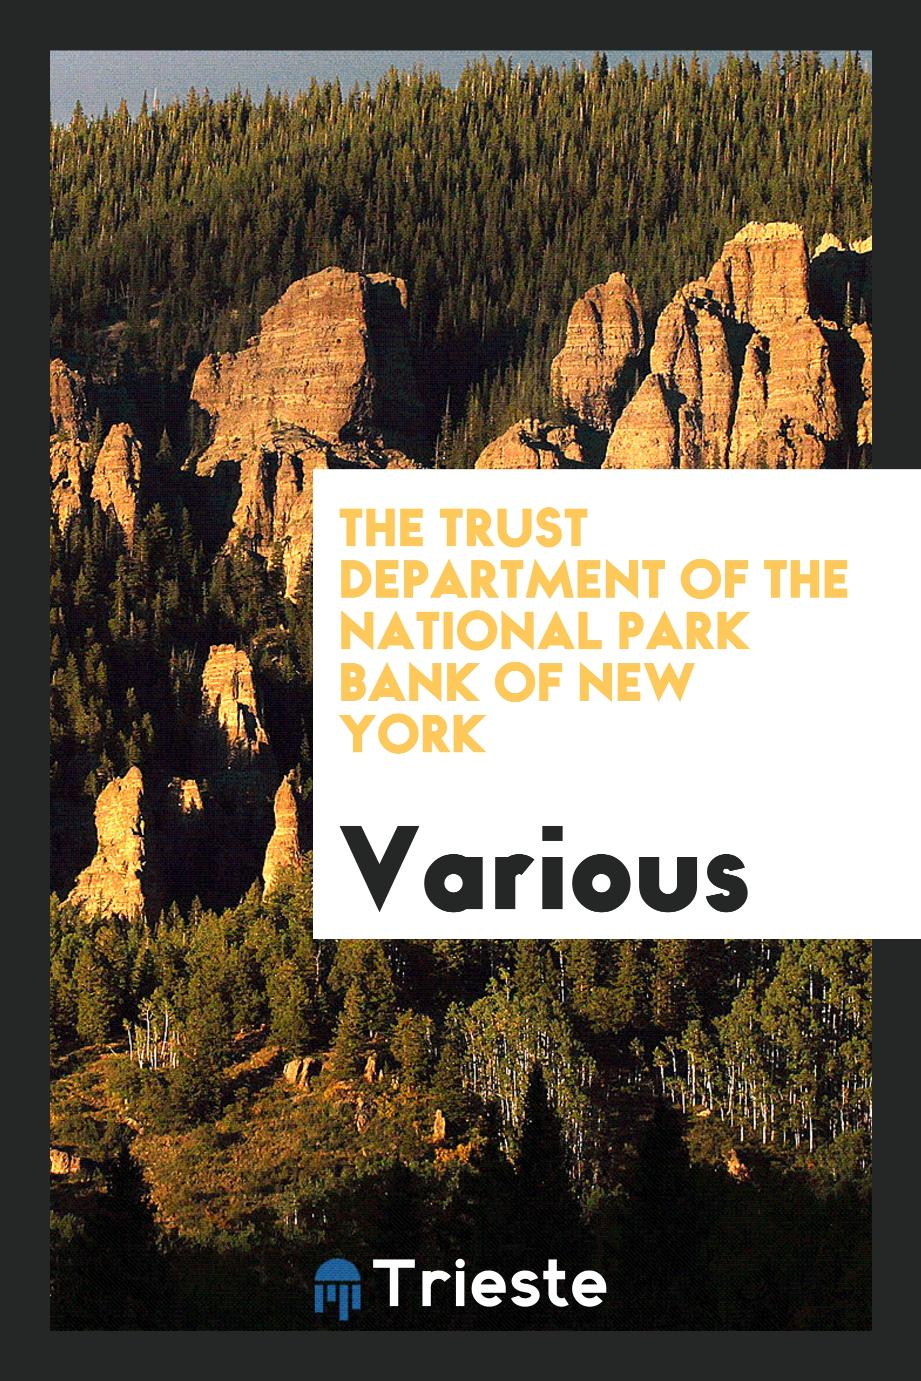 The trust department of the National Park Bank of New York